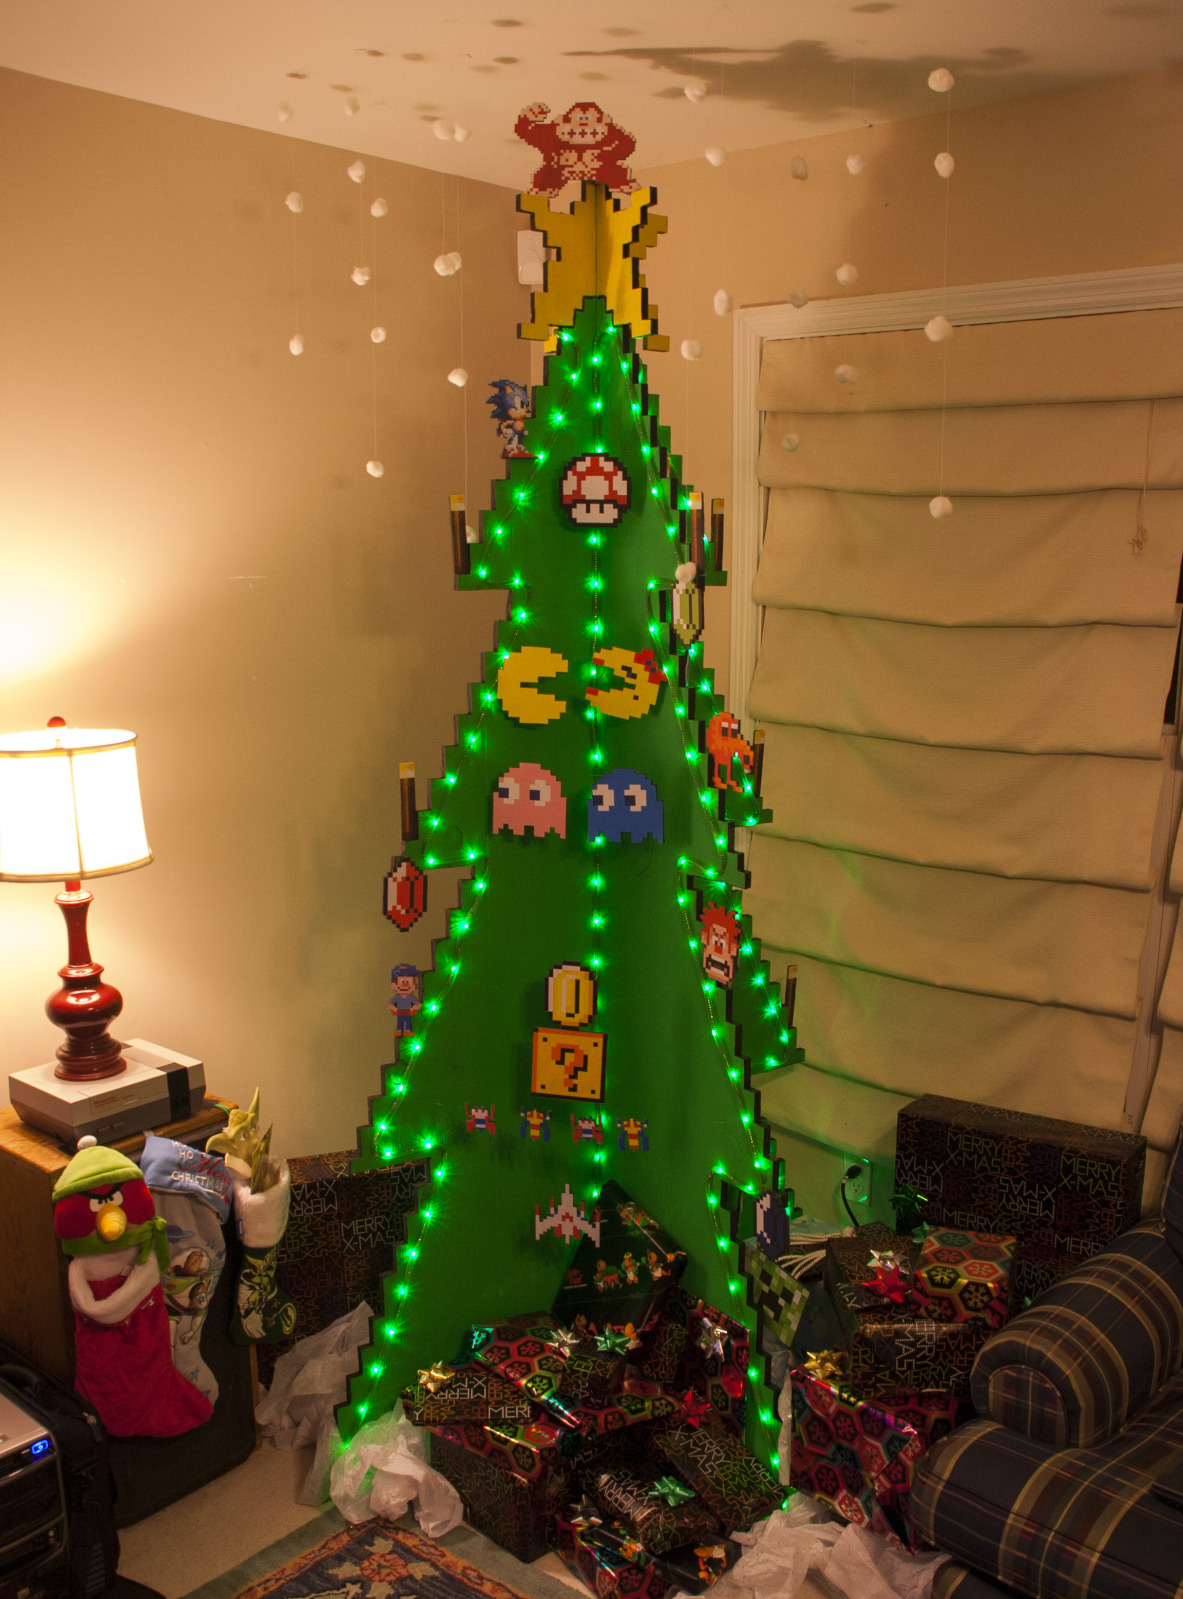 Nerdtastic Christmas Trees For The Geek In All Of Us - Red-Nosed ...